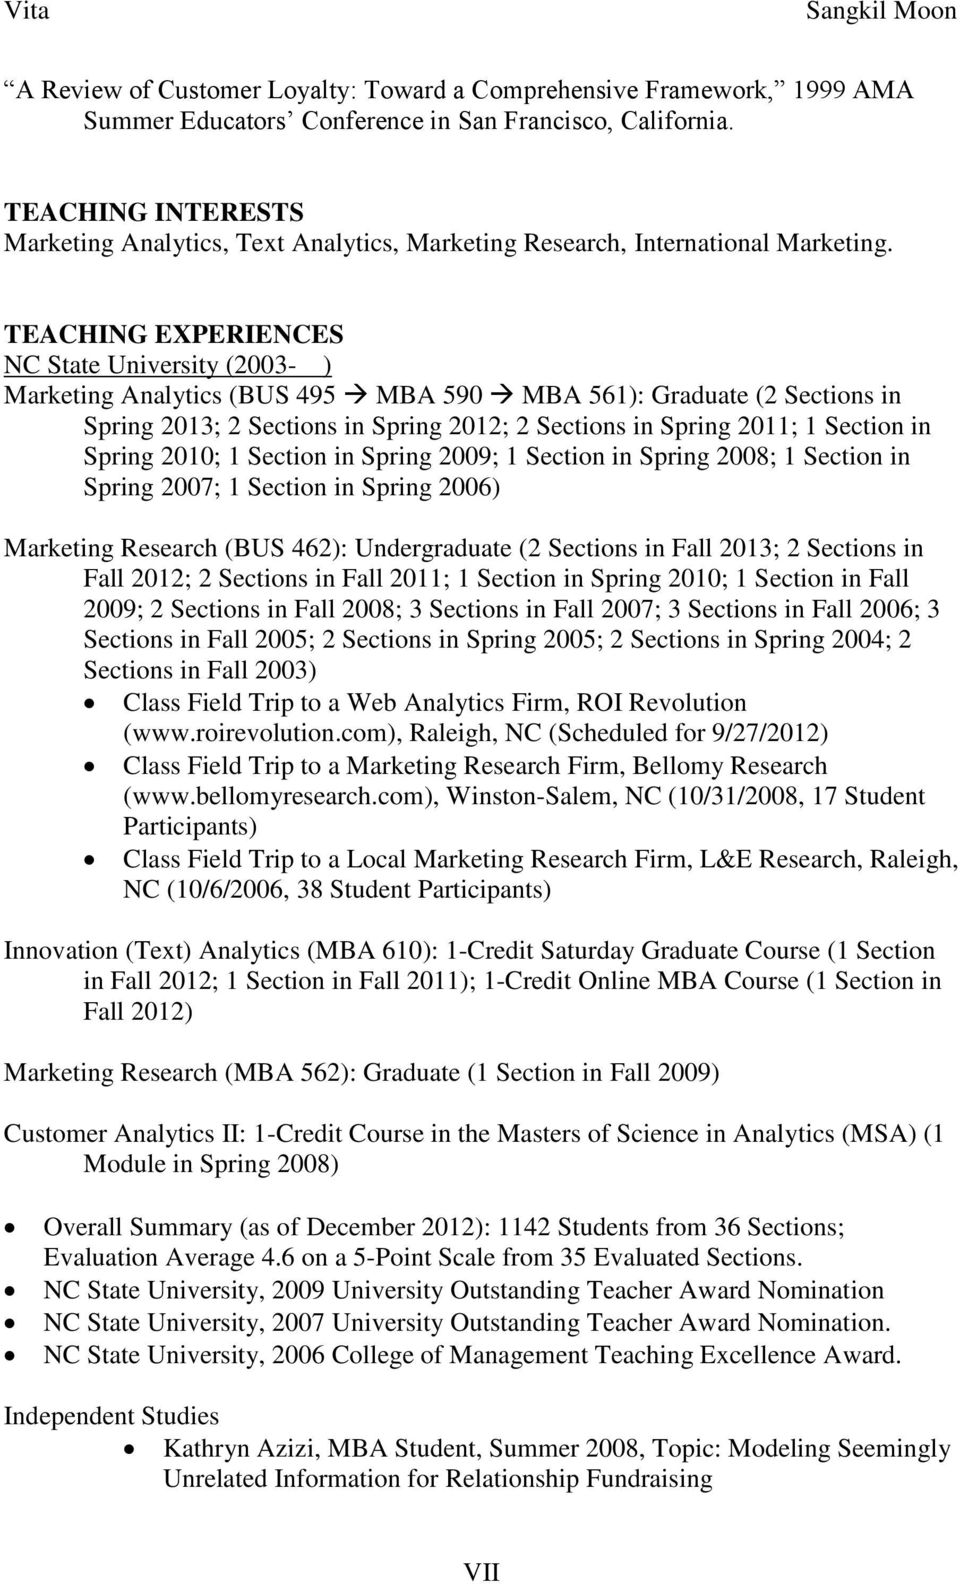 TEACHING EXPERIENCES NC State University (2003- ) Marketing Analytics (BUS 495 MBA 590 MBA 561): Graduate (2 Sections in Spring 2013; 2 Sections in Spring 2012; 2 Sections in Spring 2011; 1 Section